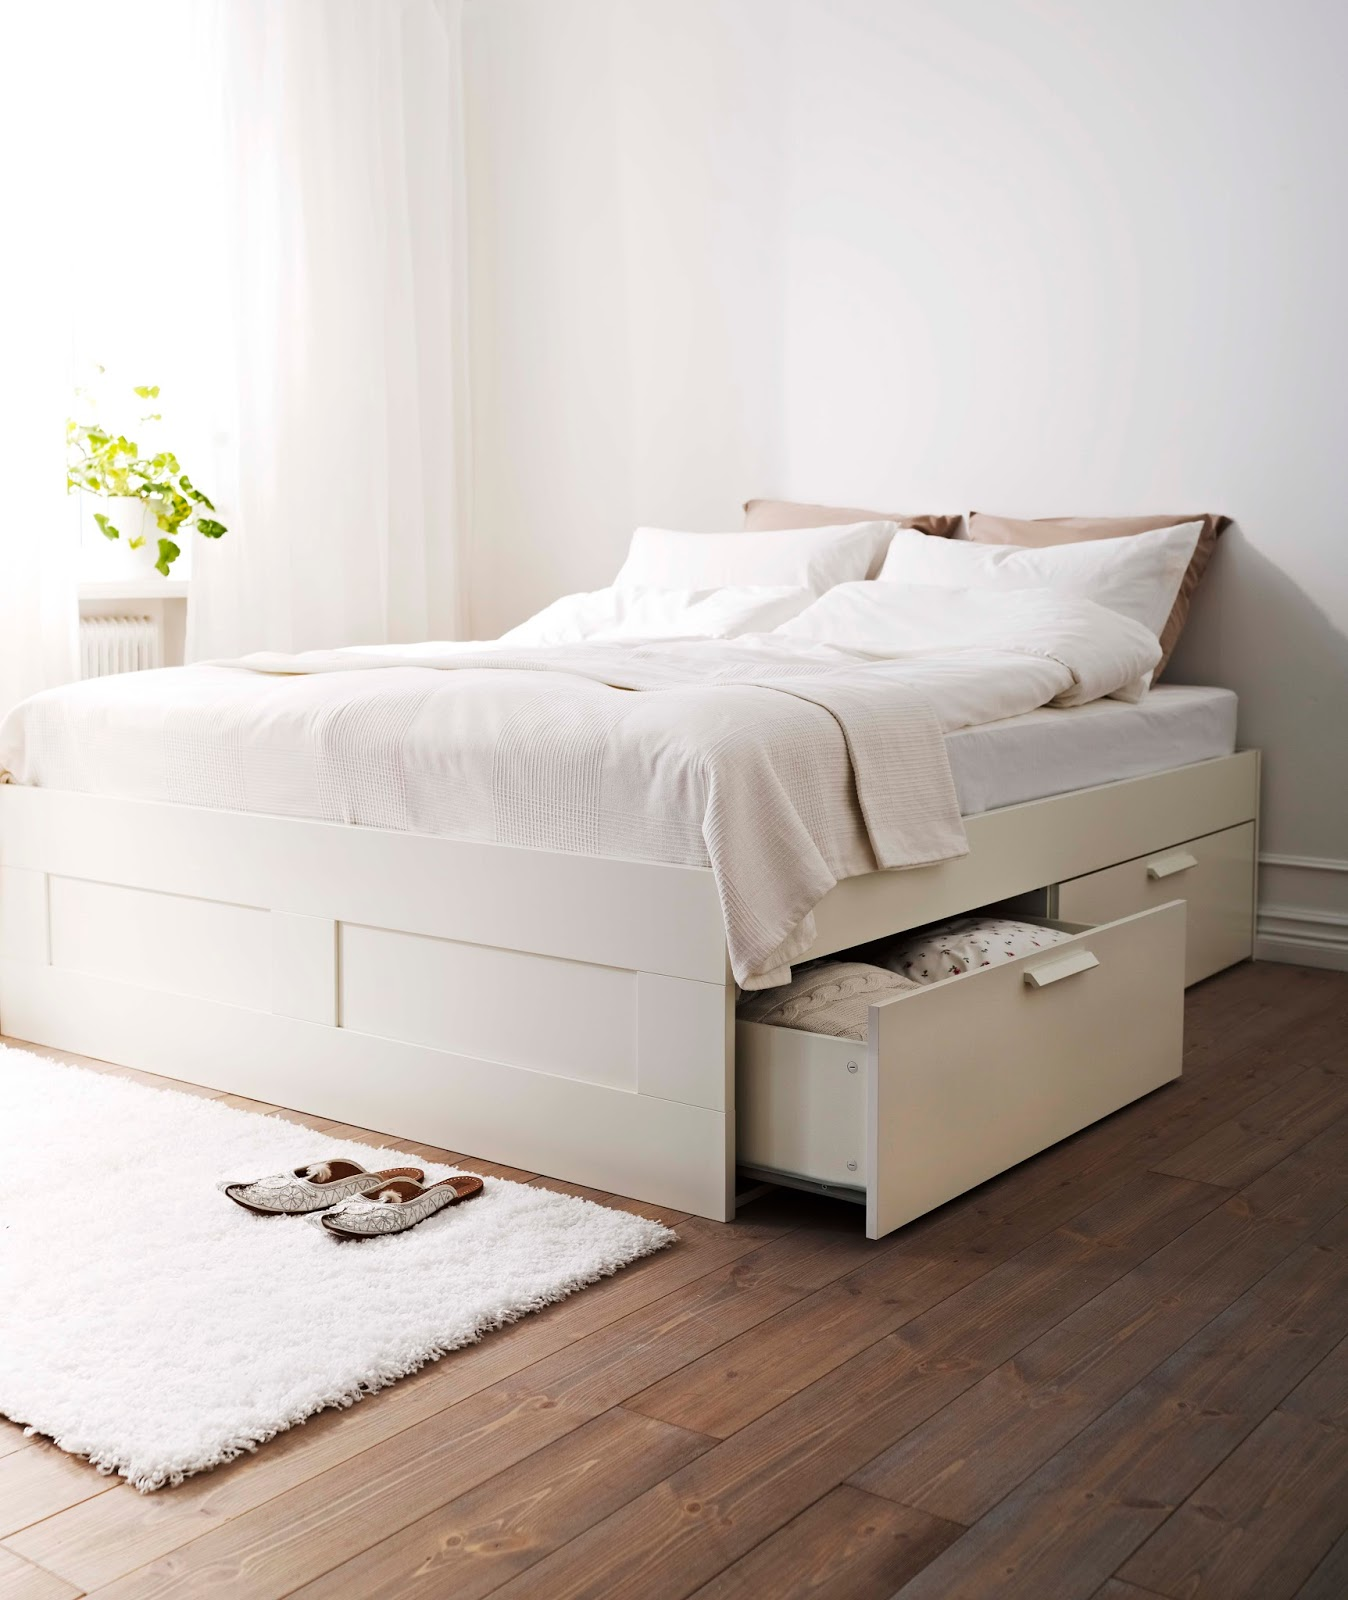 Company News in Egypt 9 IKEA products you need in your bedroom